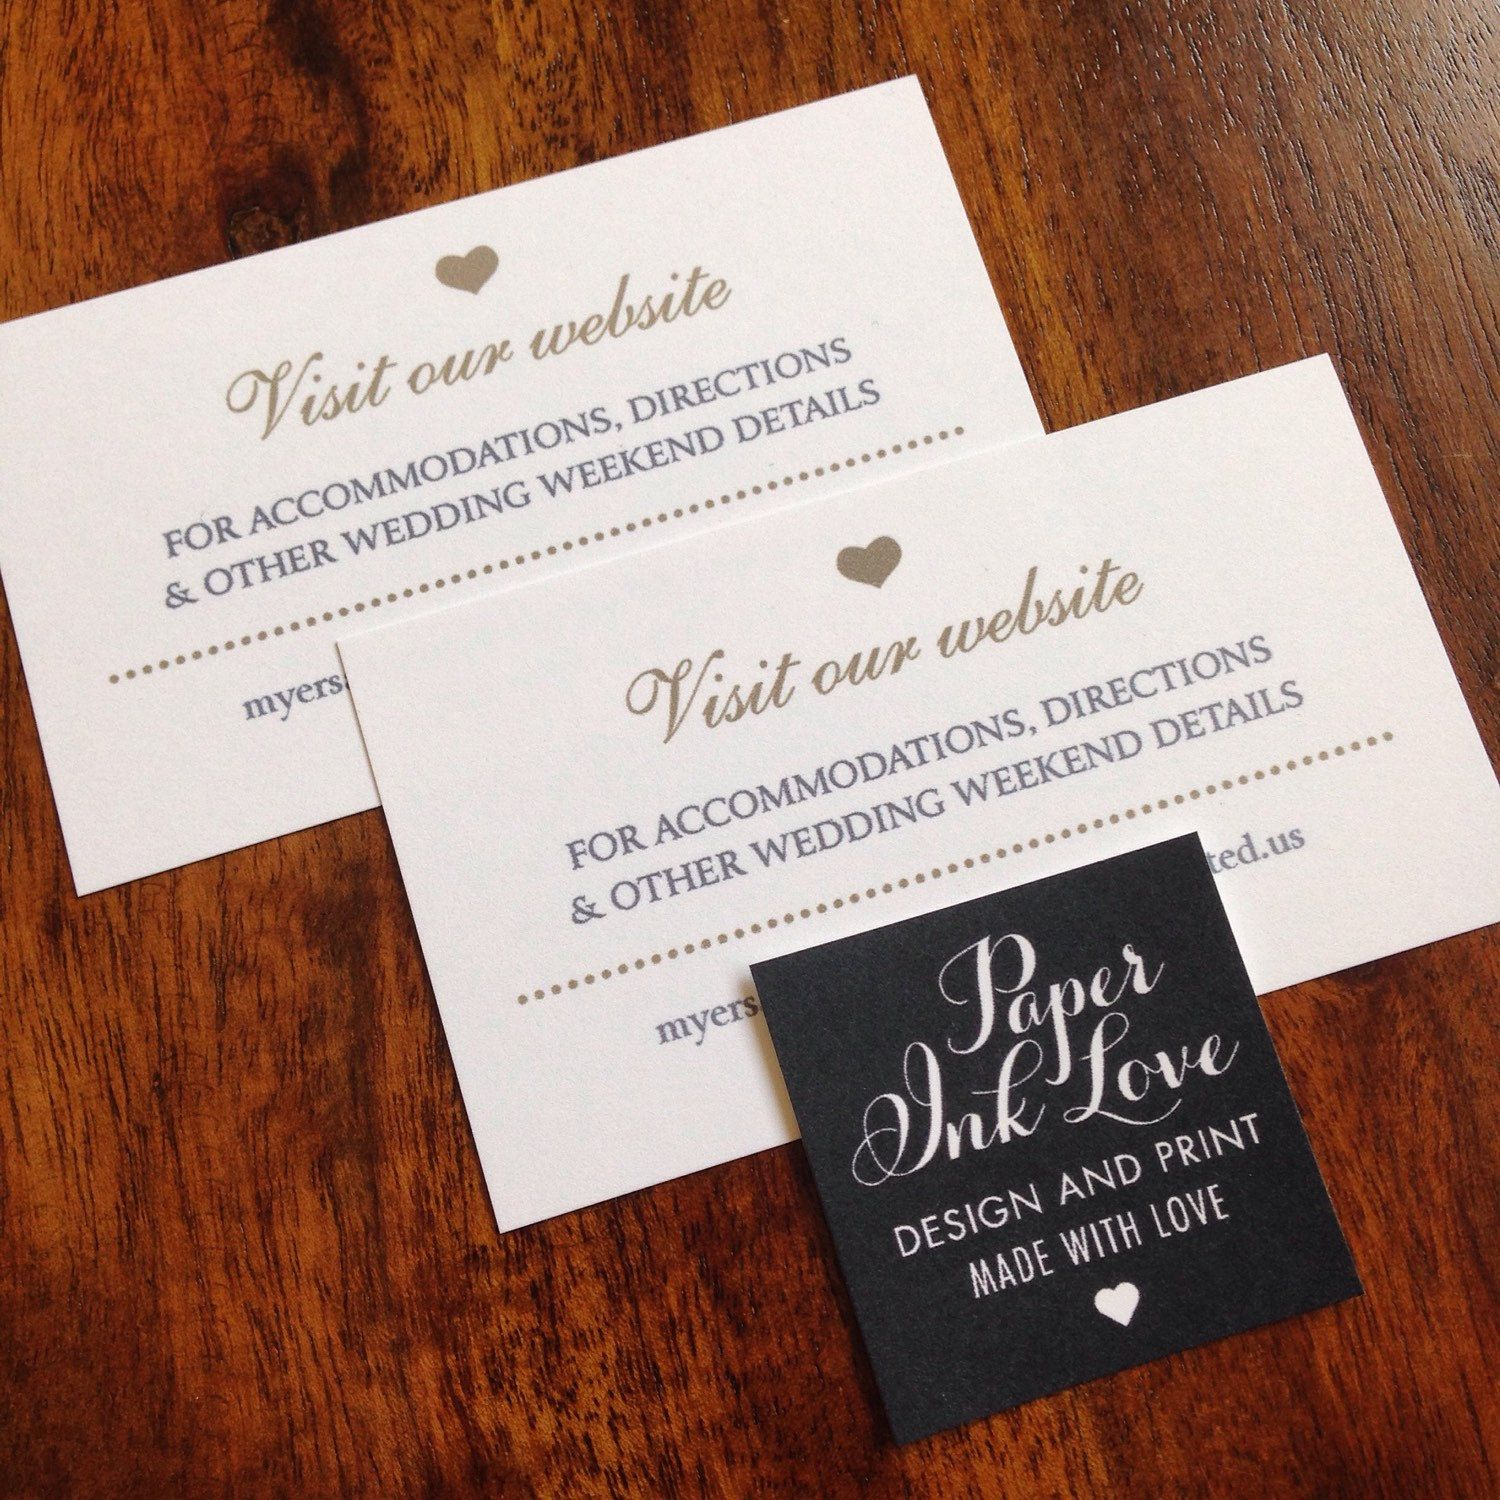 Wedding Website Cards, Enclosure Cards, Wedding Hashtag Cards or ...